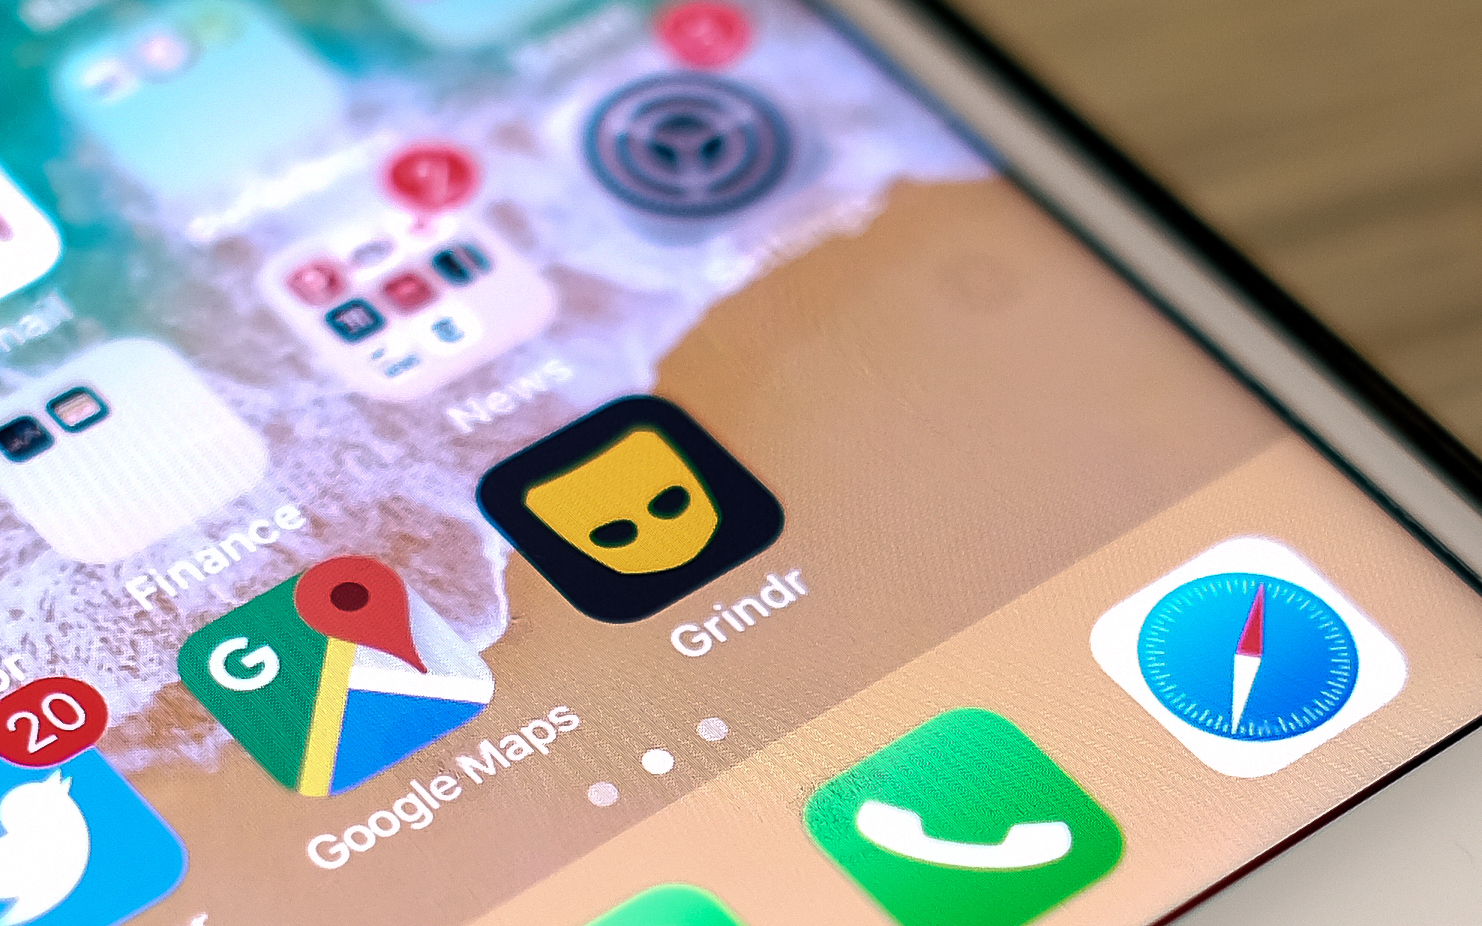 Dating app Grindr next to the Google Maps app on an iPhone screen.